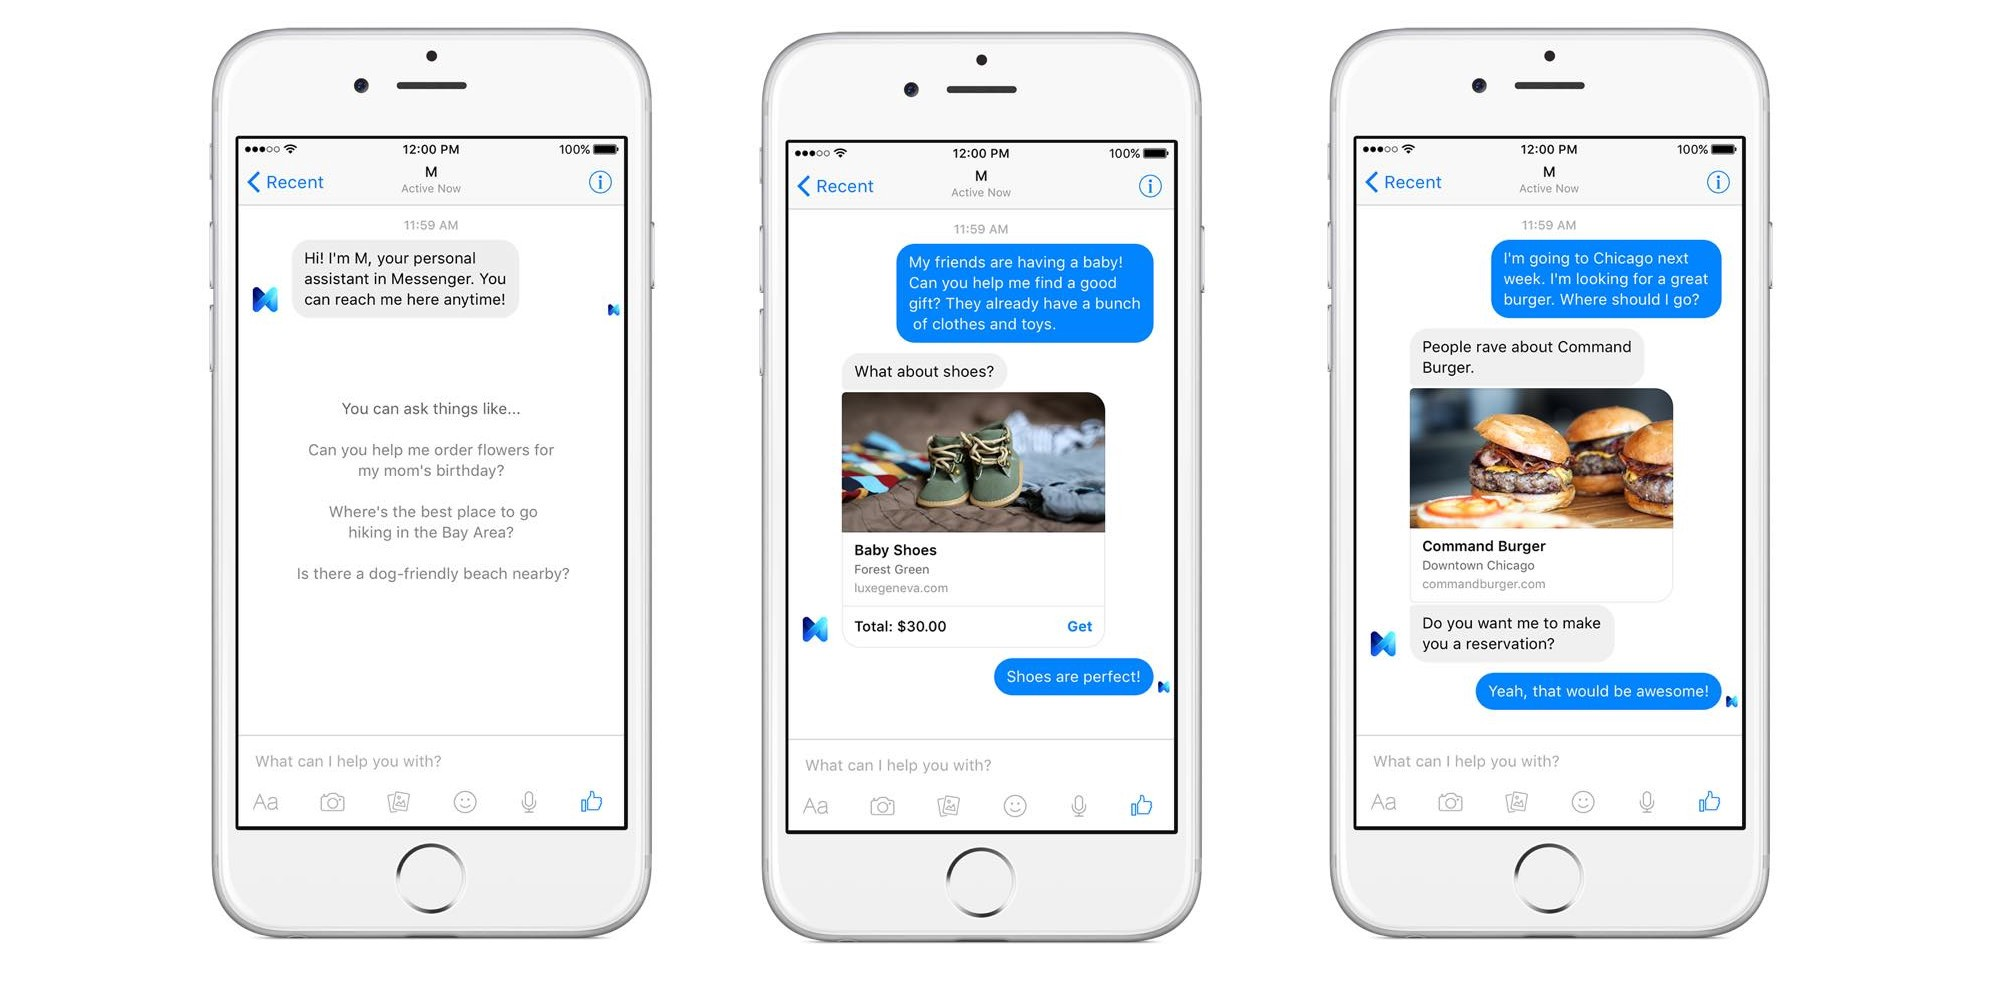 Introducing the exciting new future of Messaging – Build